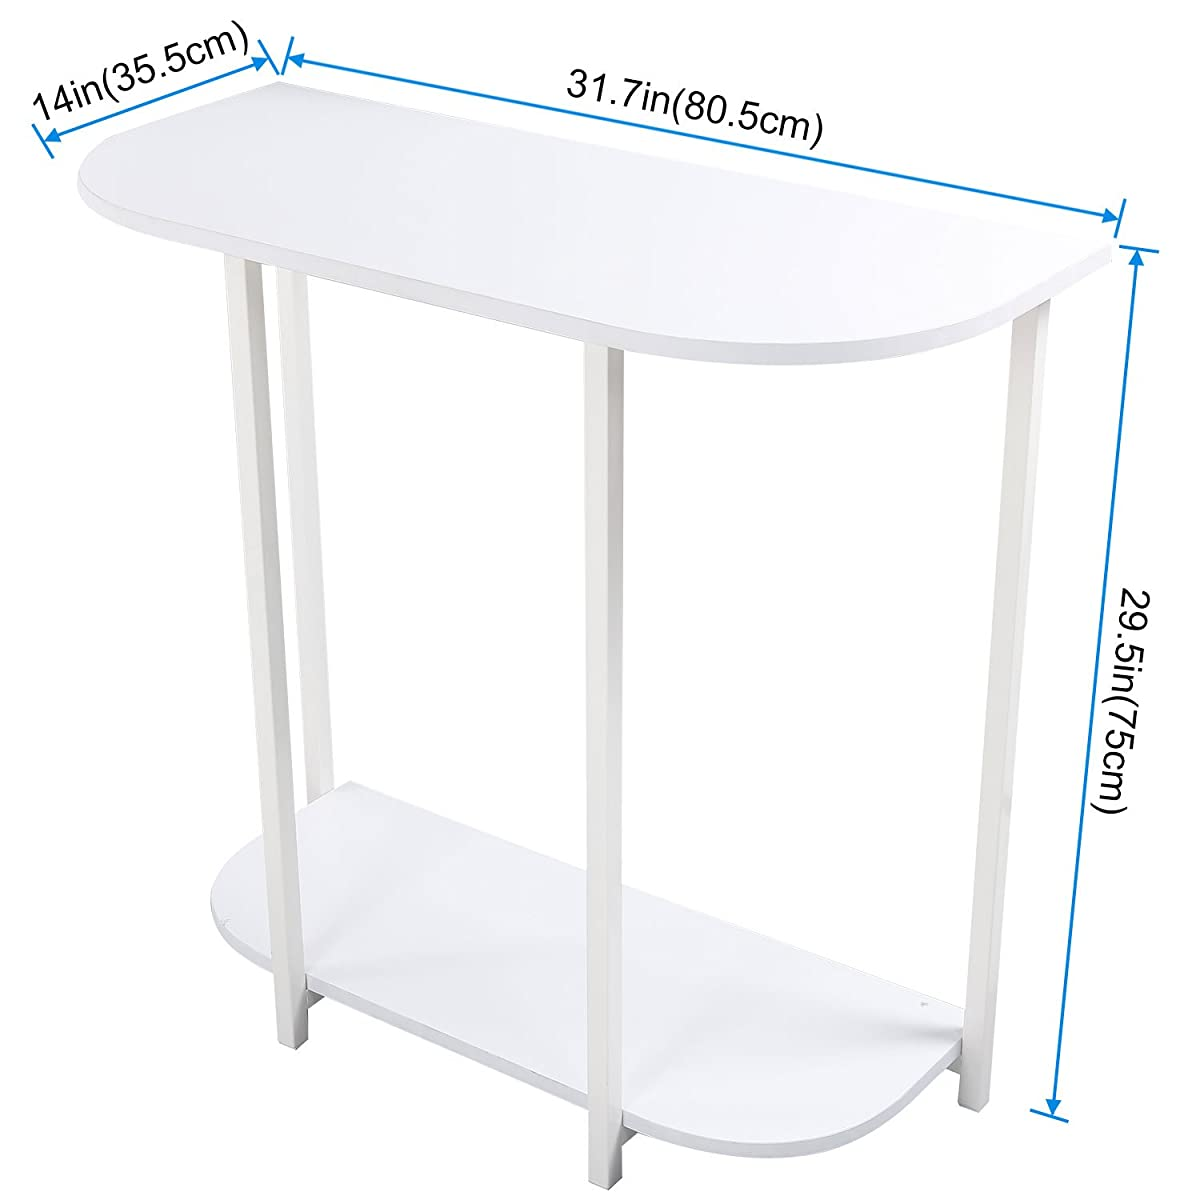 Lifewit Modern 2-tier Console Table Entryway Table, White